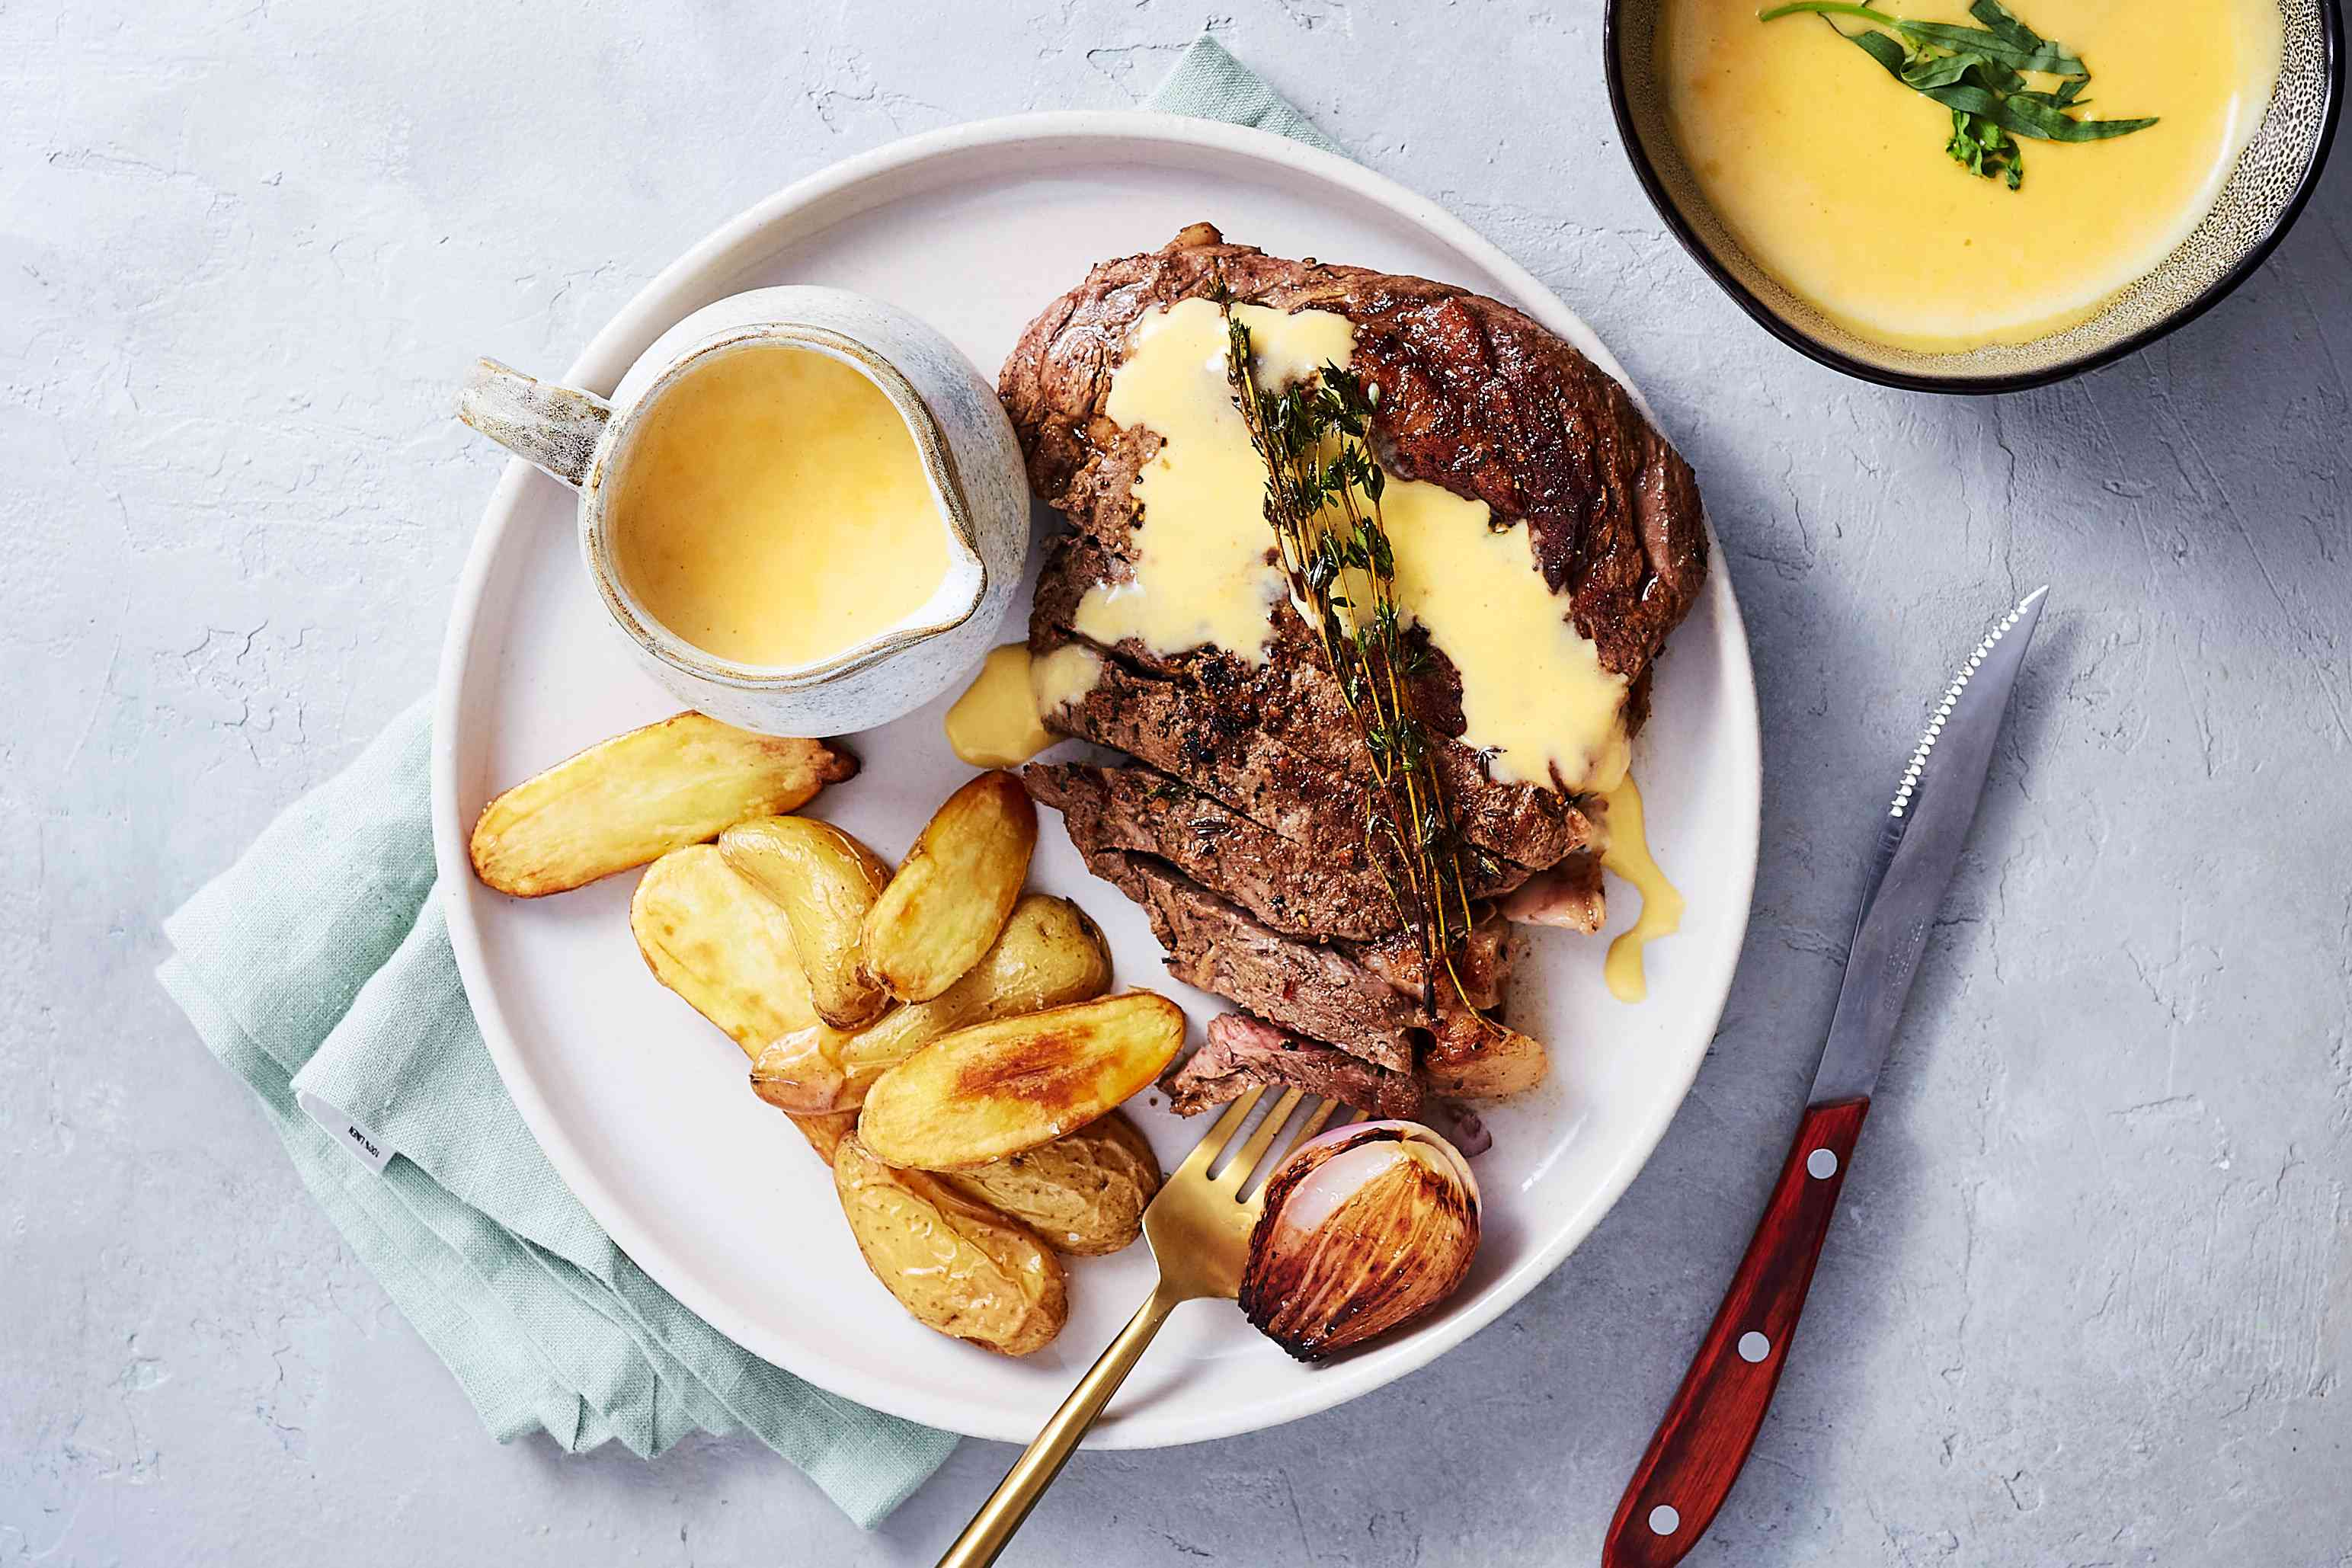 Classic Bearnaise Sauce, served with a steak and potatoes